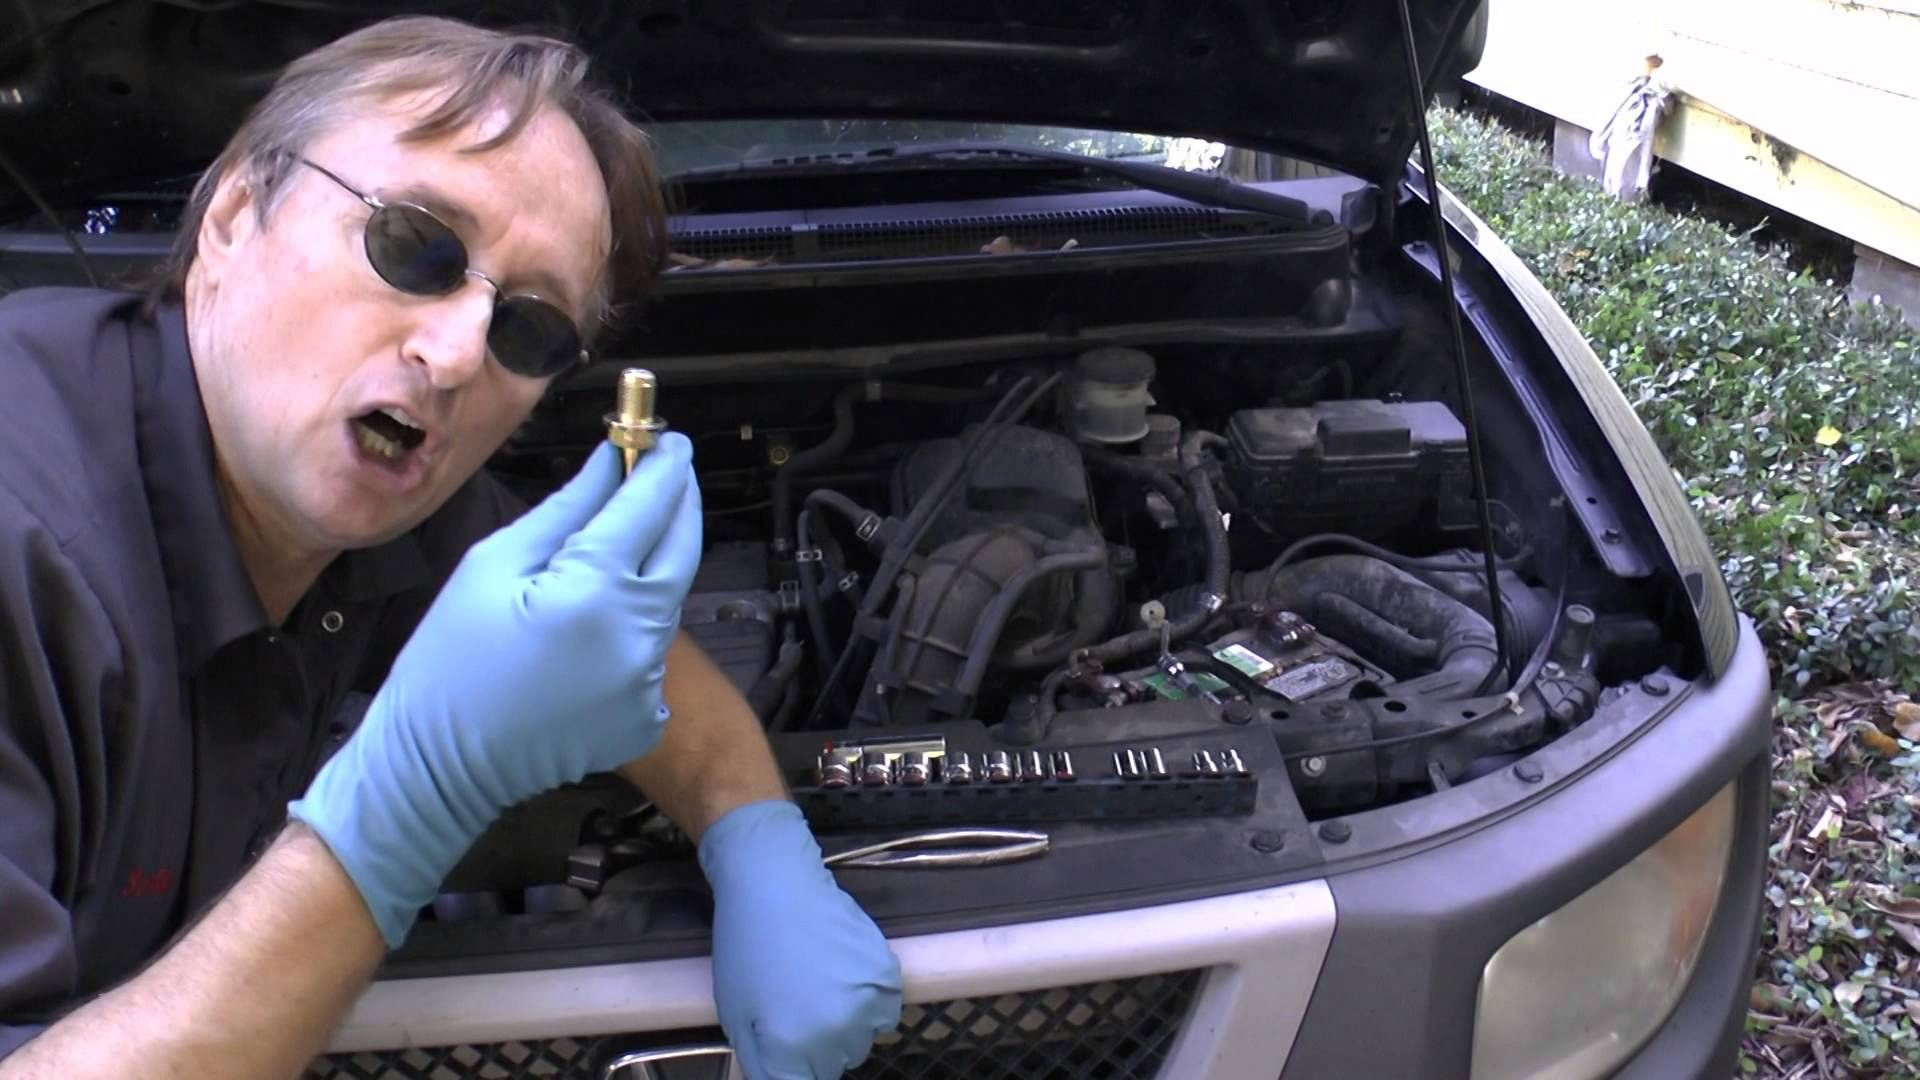 Fixing An Oil Burning Engine For 10 Bucks Tips Preps Related Car Cleaning Hacks Truck